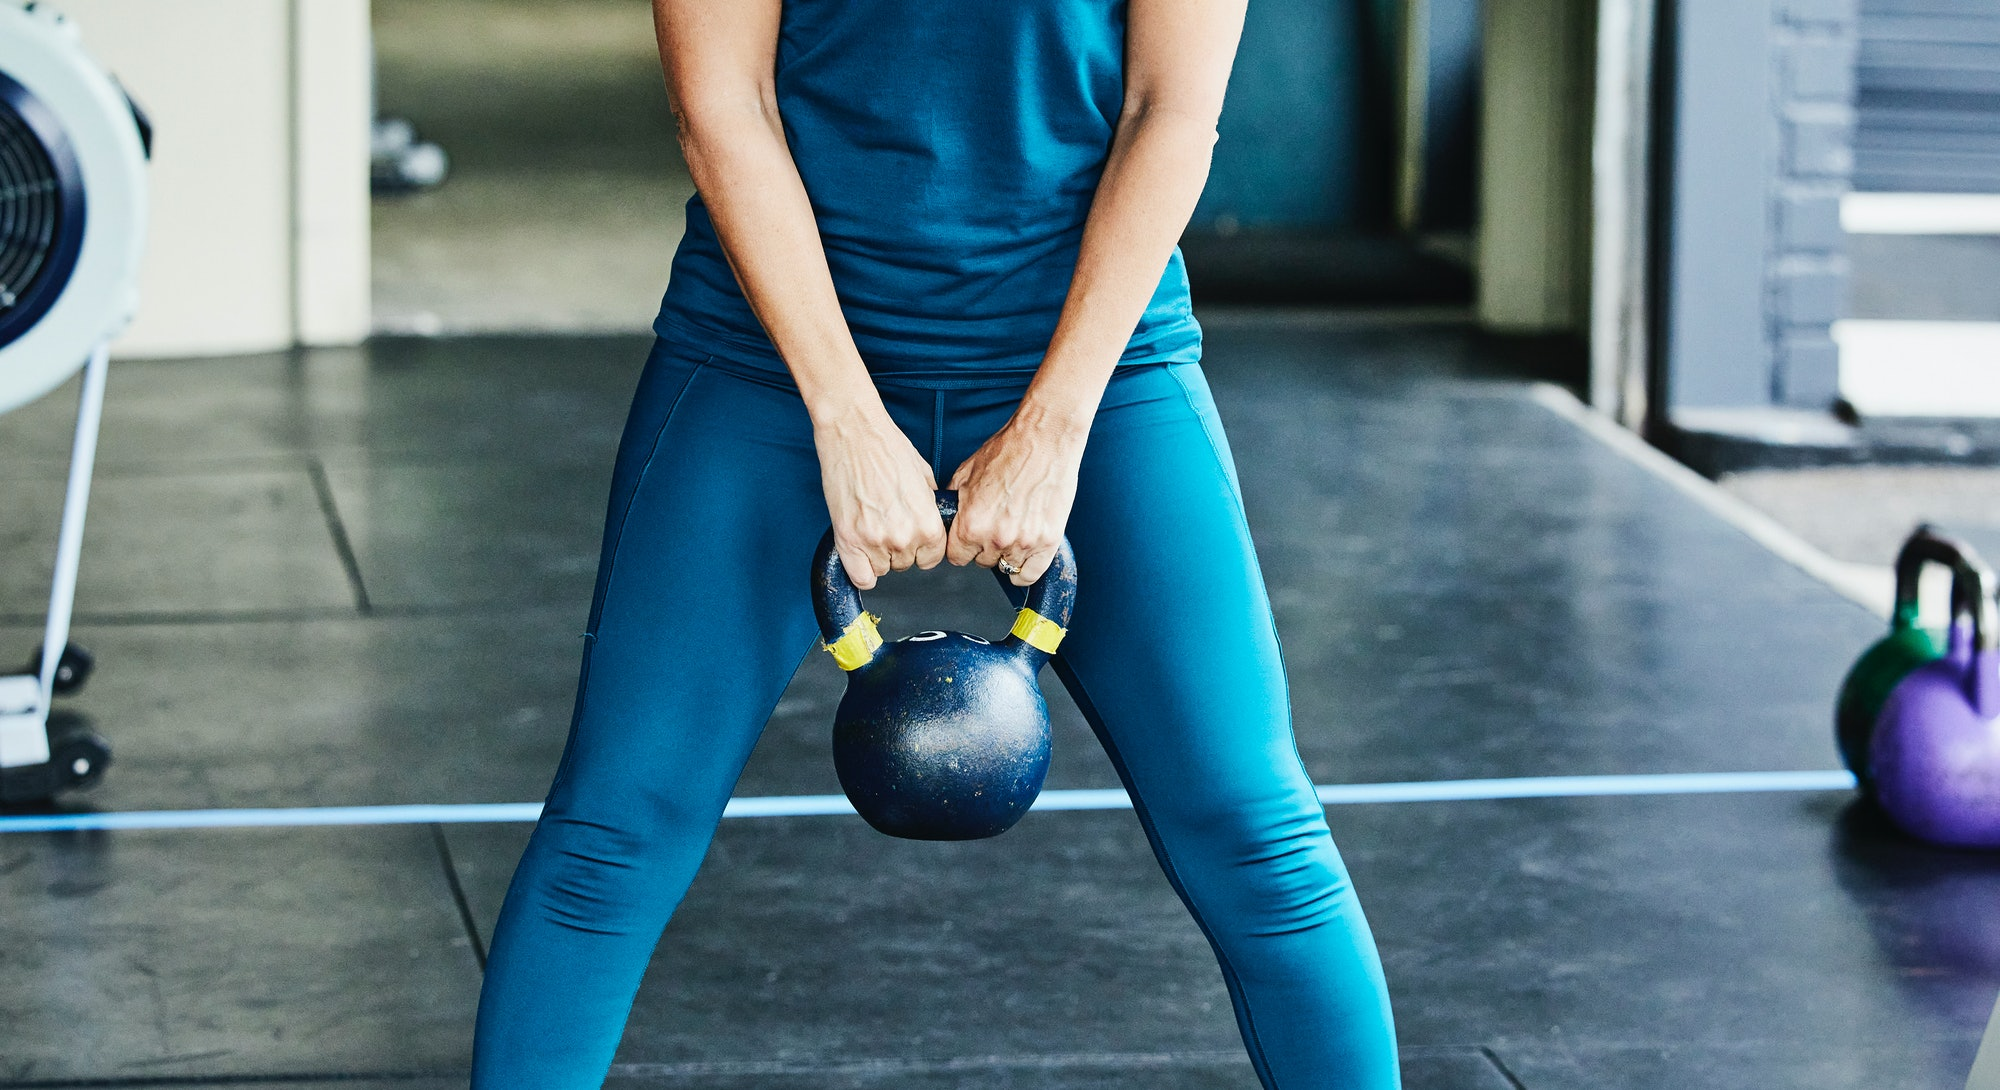 A person wearing a mask performs a kettlebell deadlift in the gym. You don't need a lot of space to have a powerful kettlebell workout.